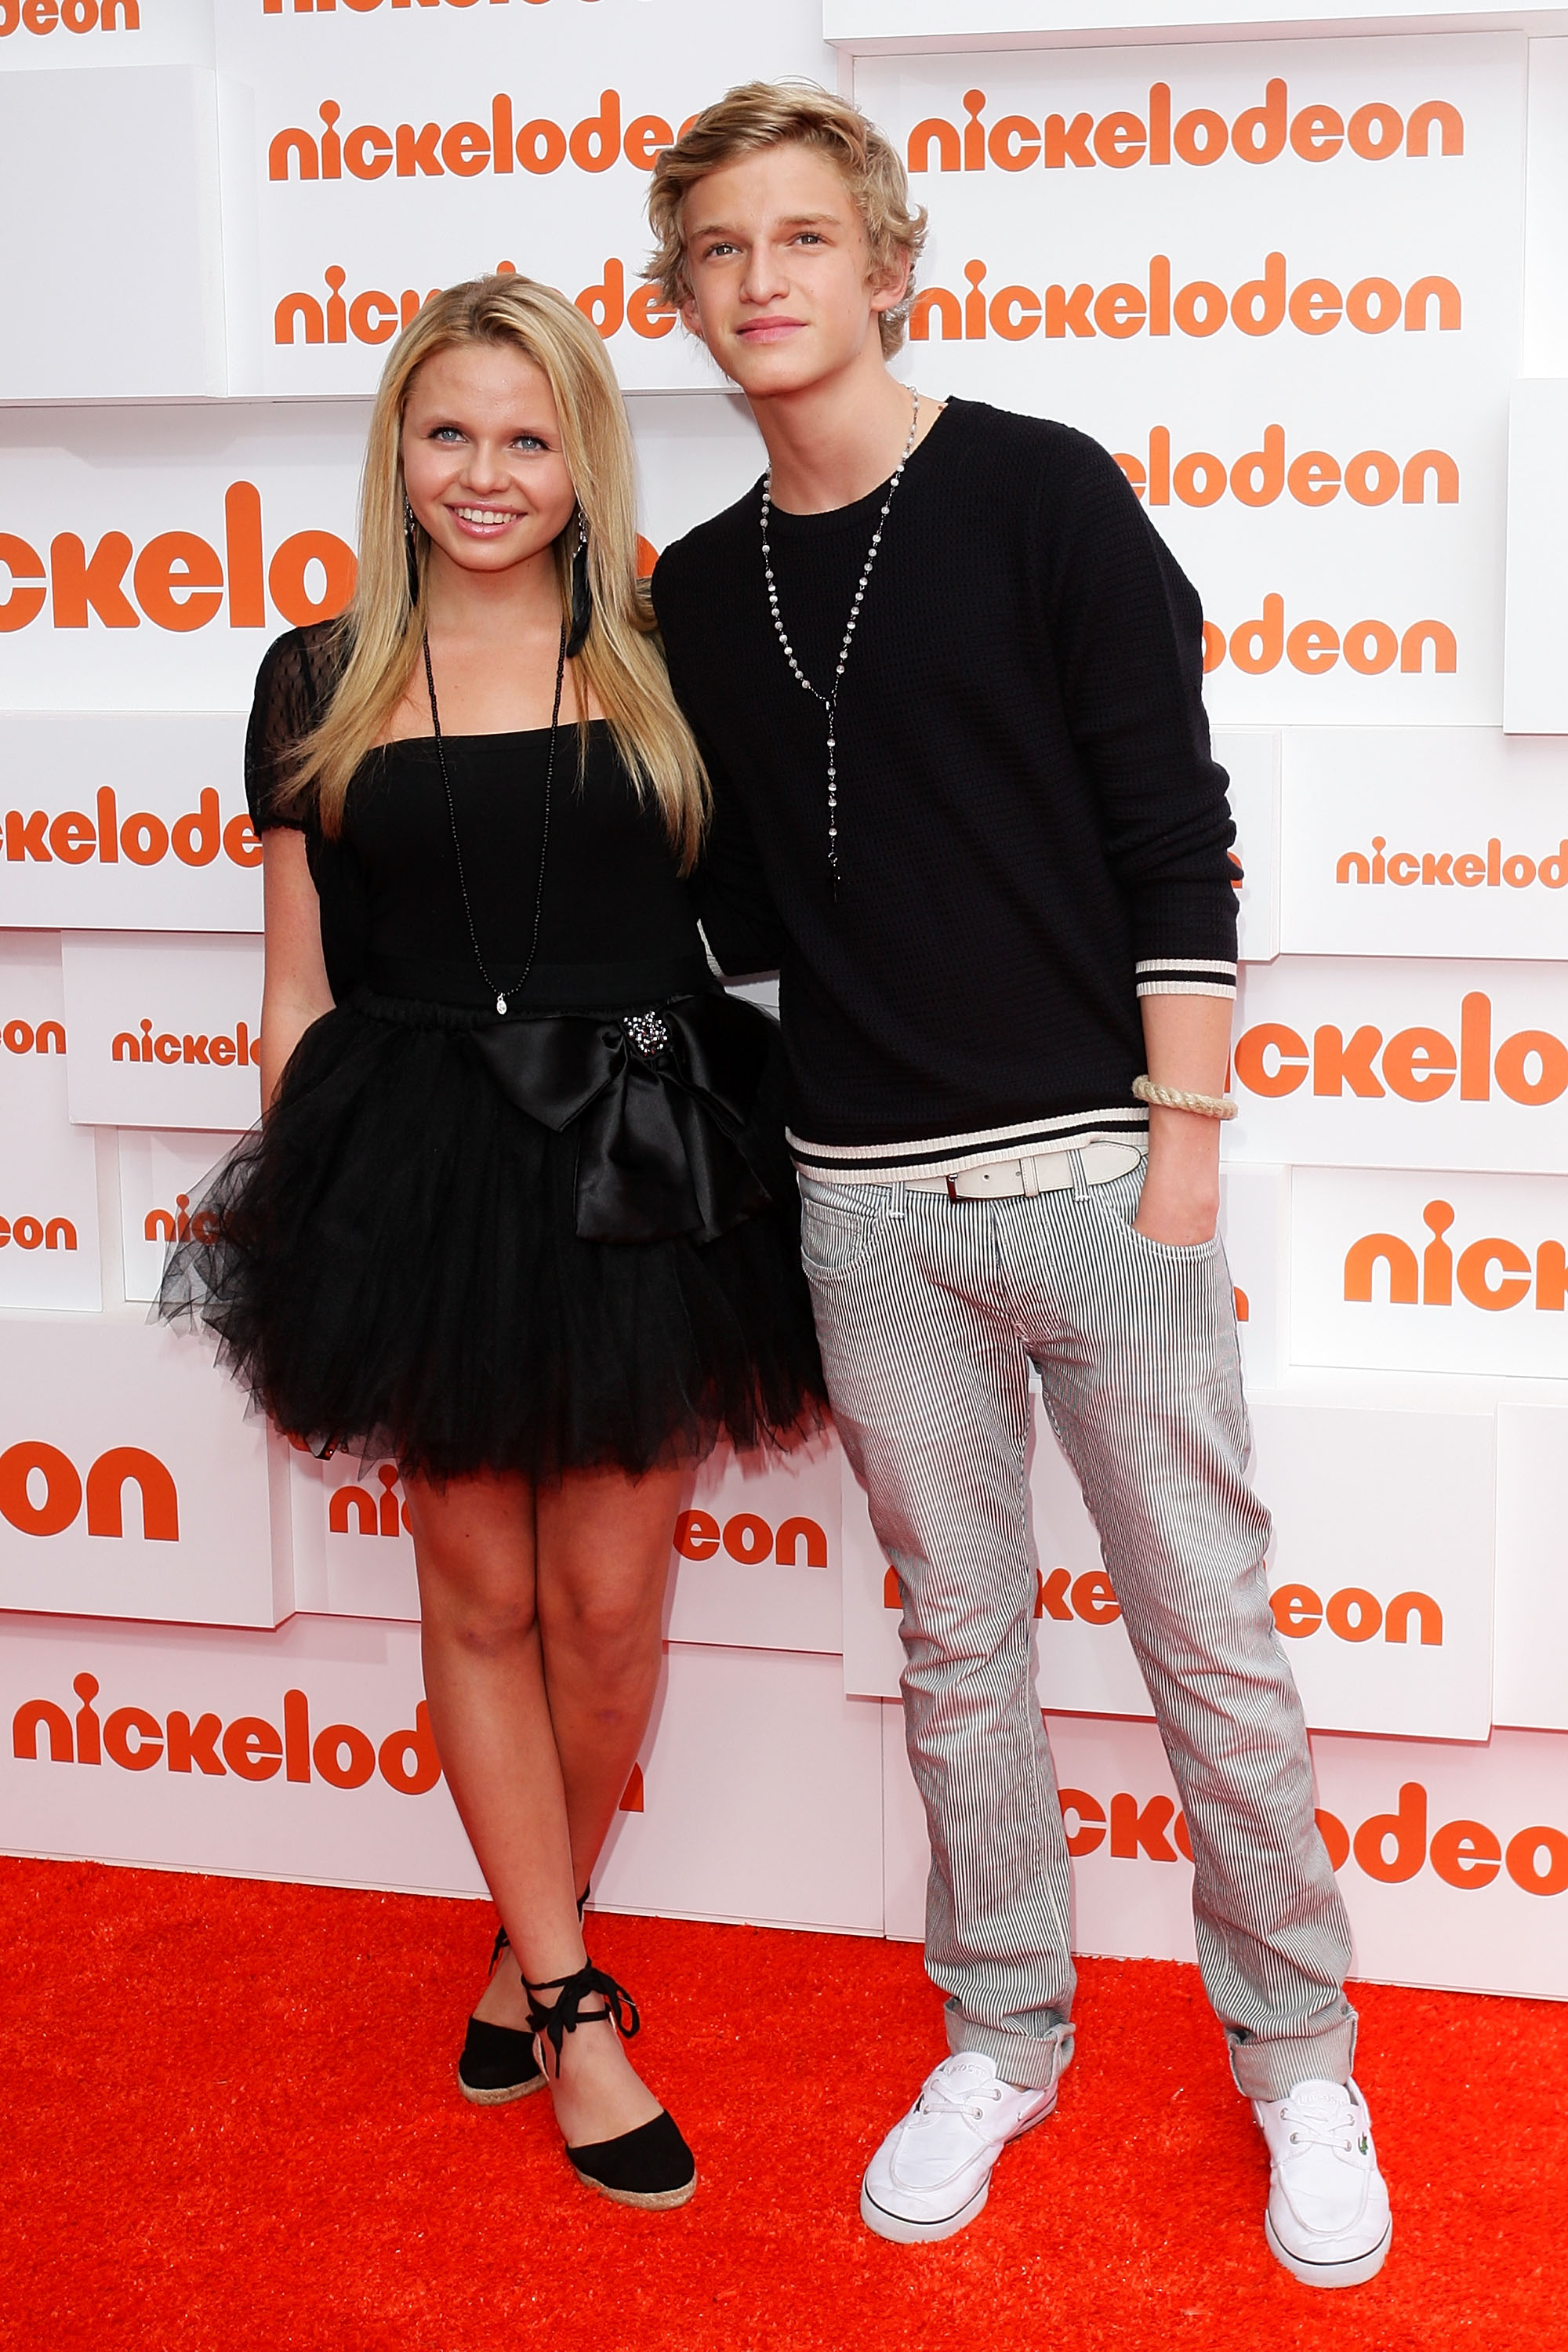 Alicia Banit and Cody Simpson